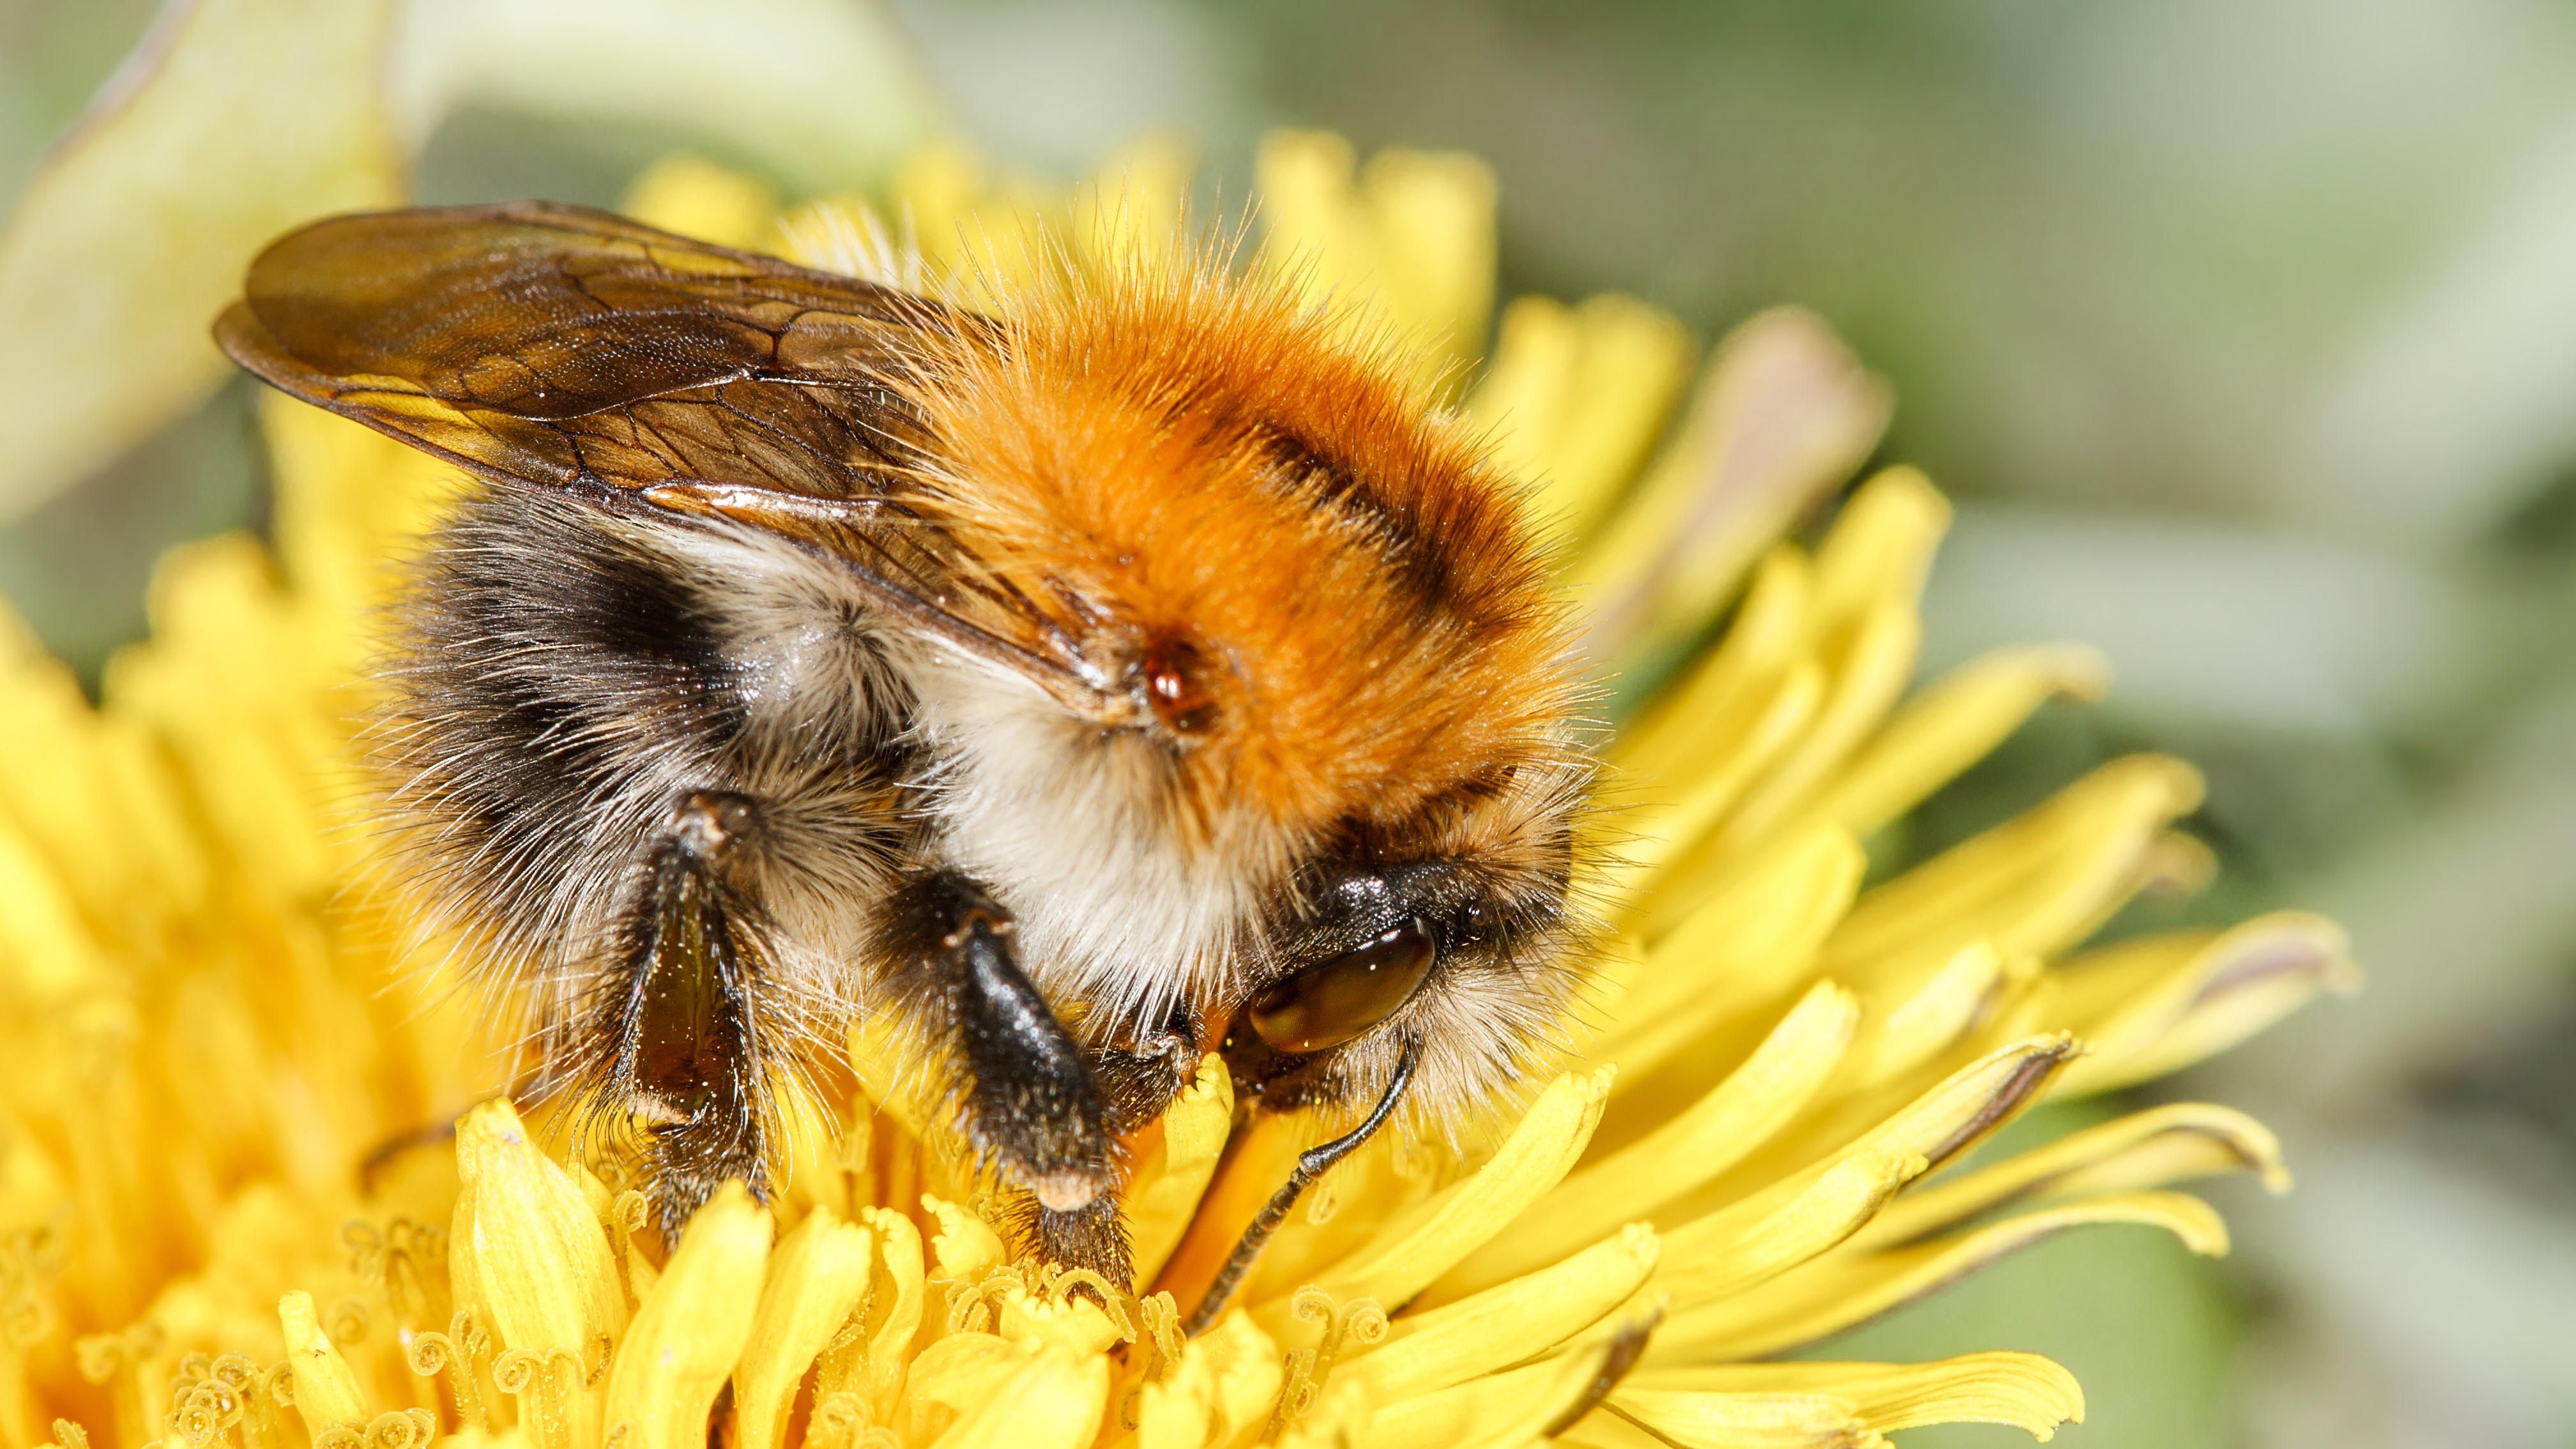 Attract Bees - Attract Bumblebees - Bumblebee - Common carder bee